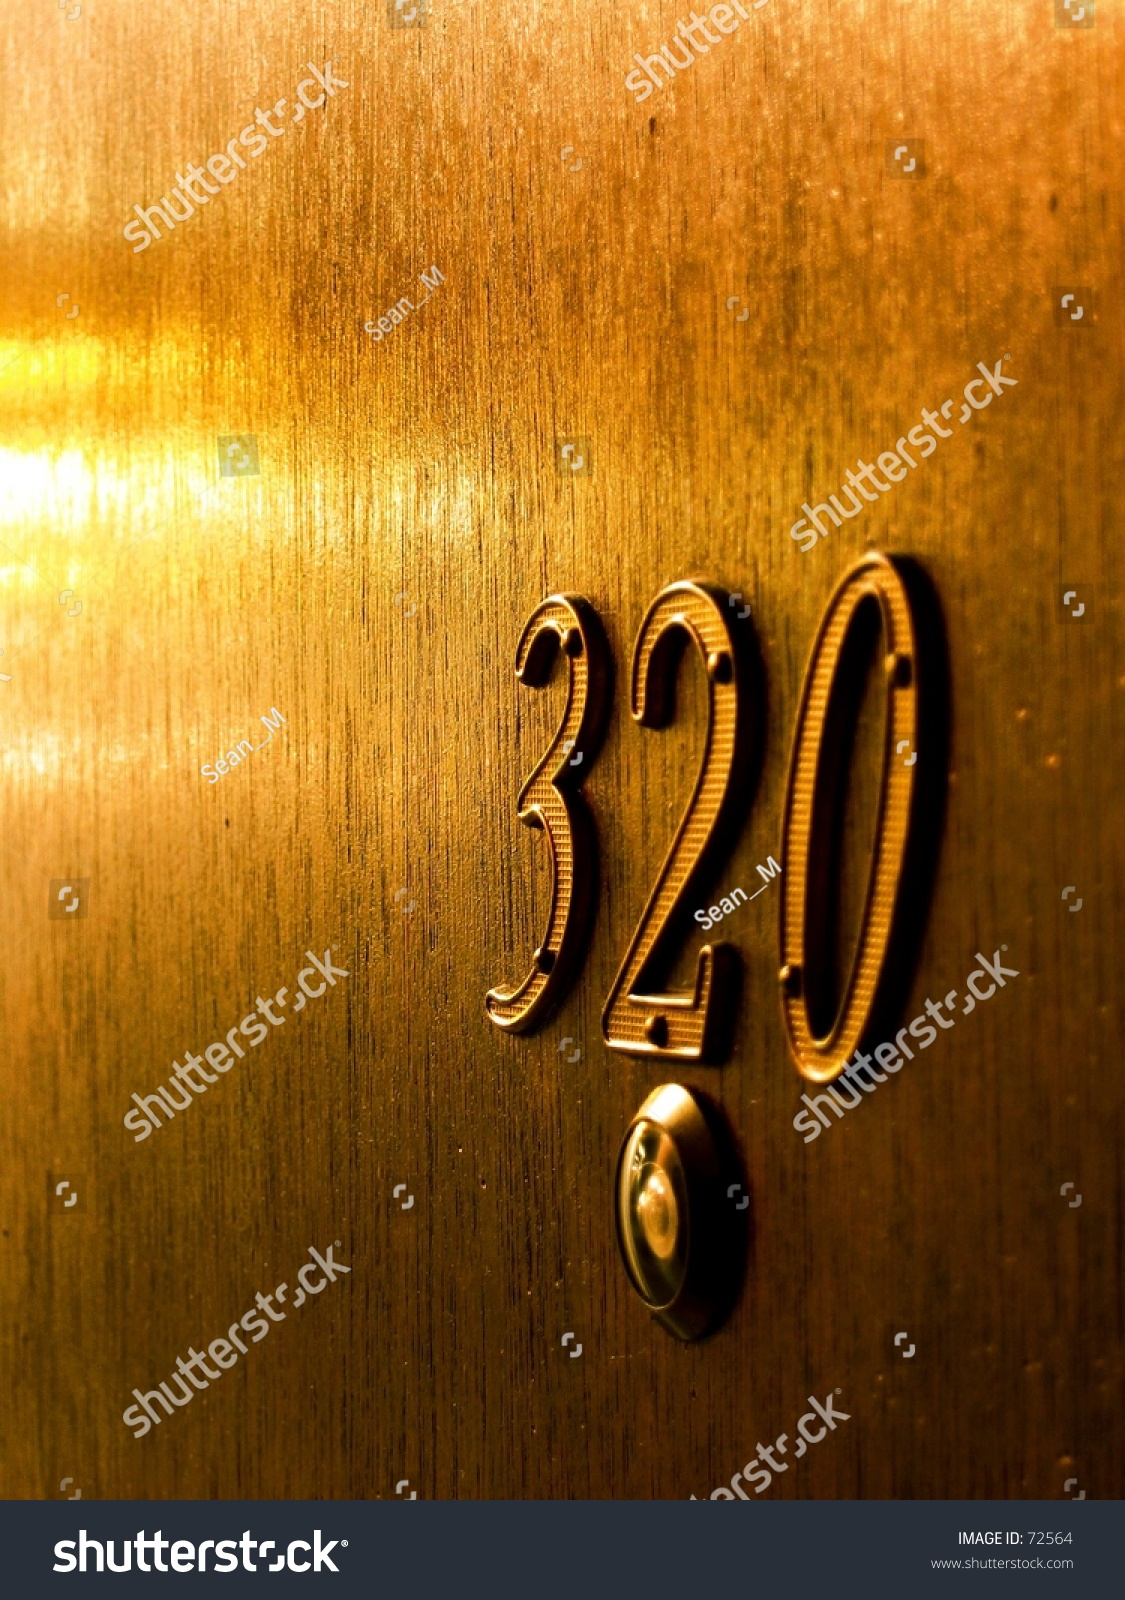 Stunning Apartment Door Numbers Ideas - Home Decorating Ideas ...